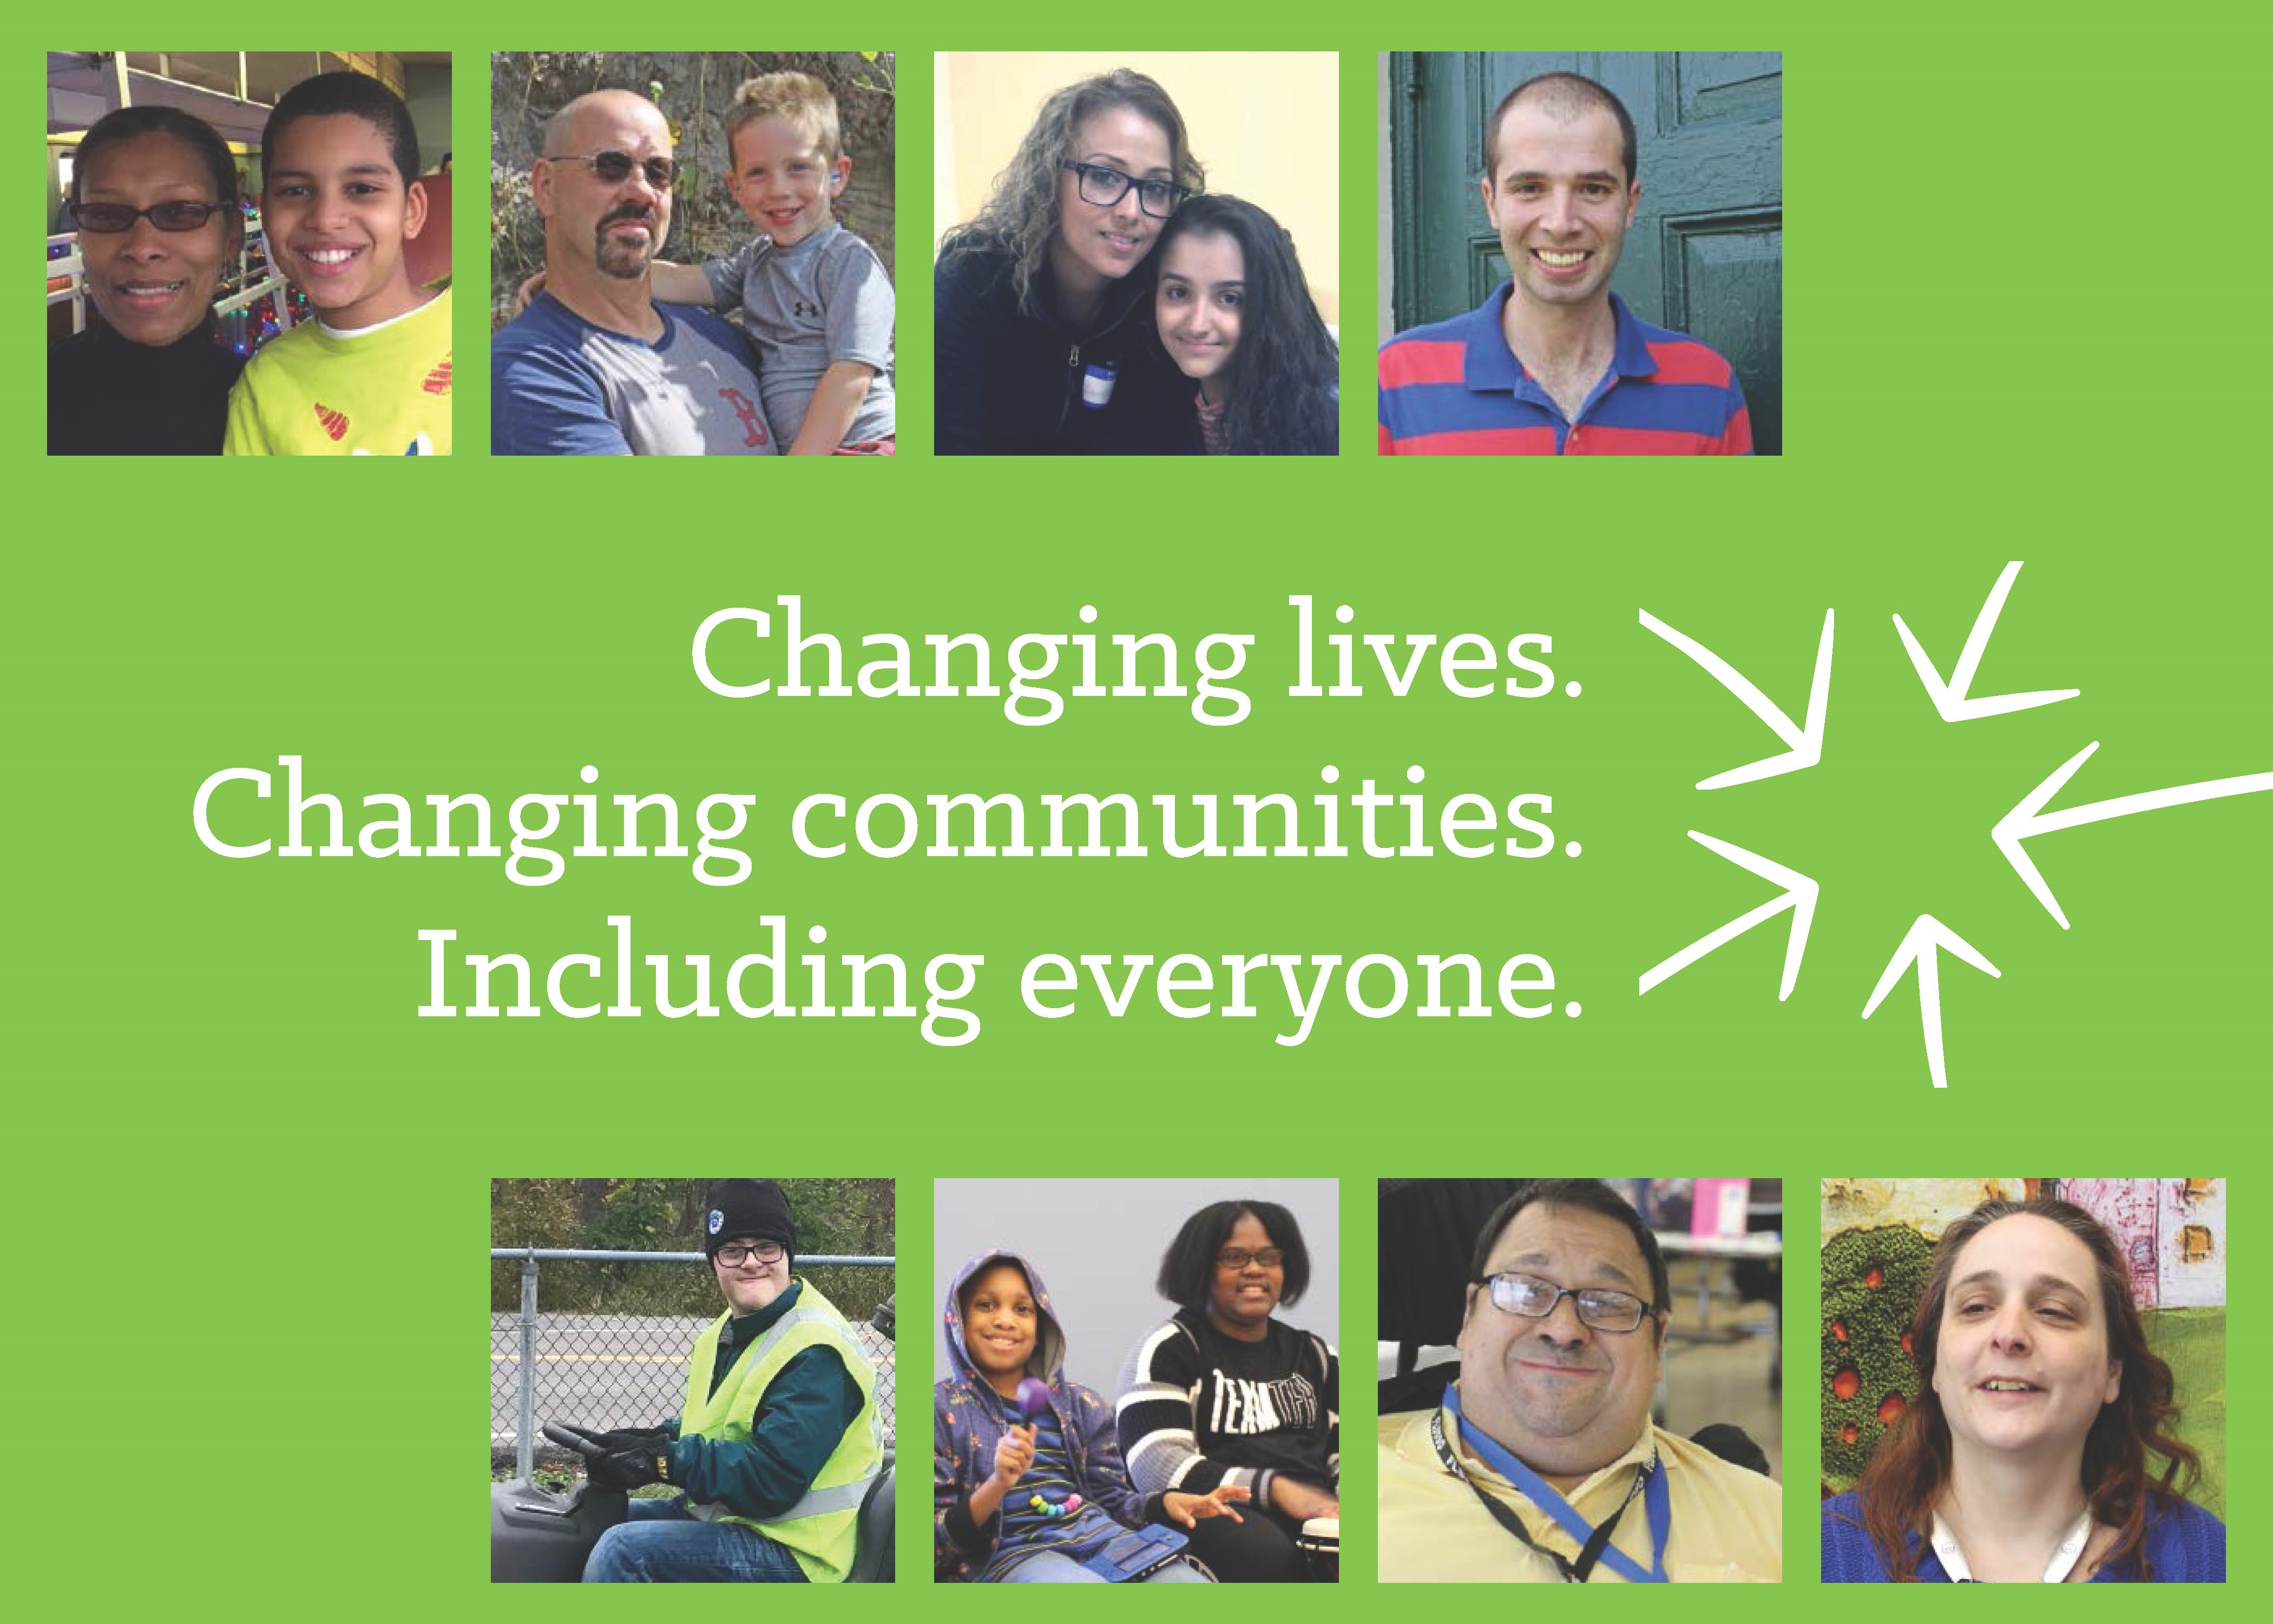 Green panel showing 8 photos of people representing diverse families and individuals; center of image shows words Changing lives, Changing communities, Including everyone.